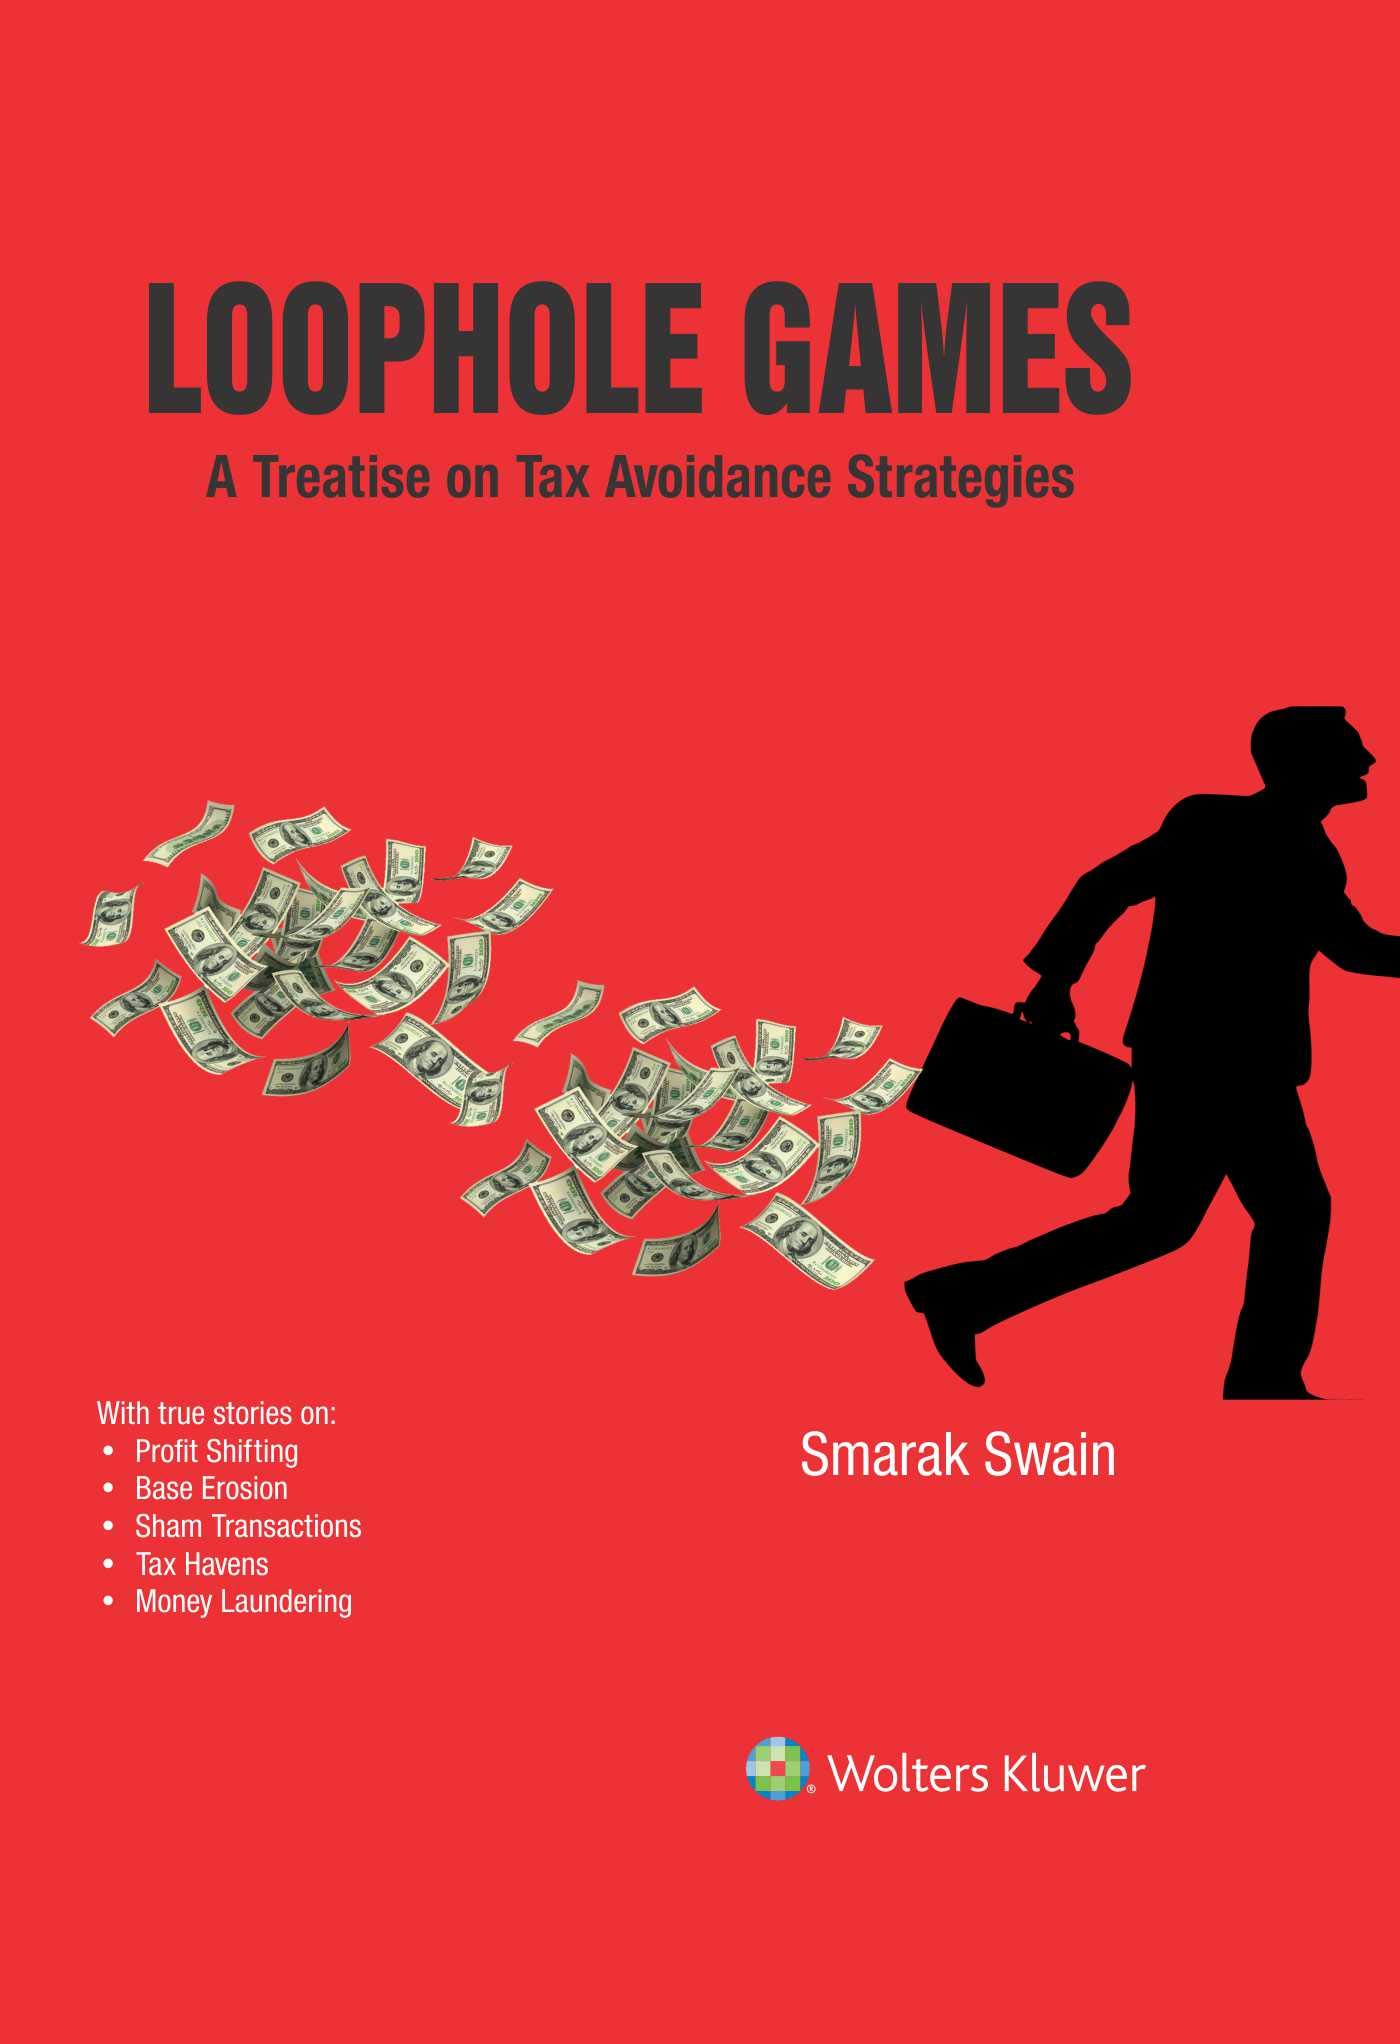 Smarak Swain's book Loophole Games